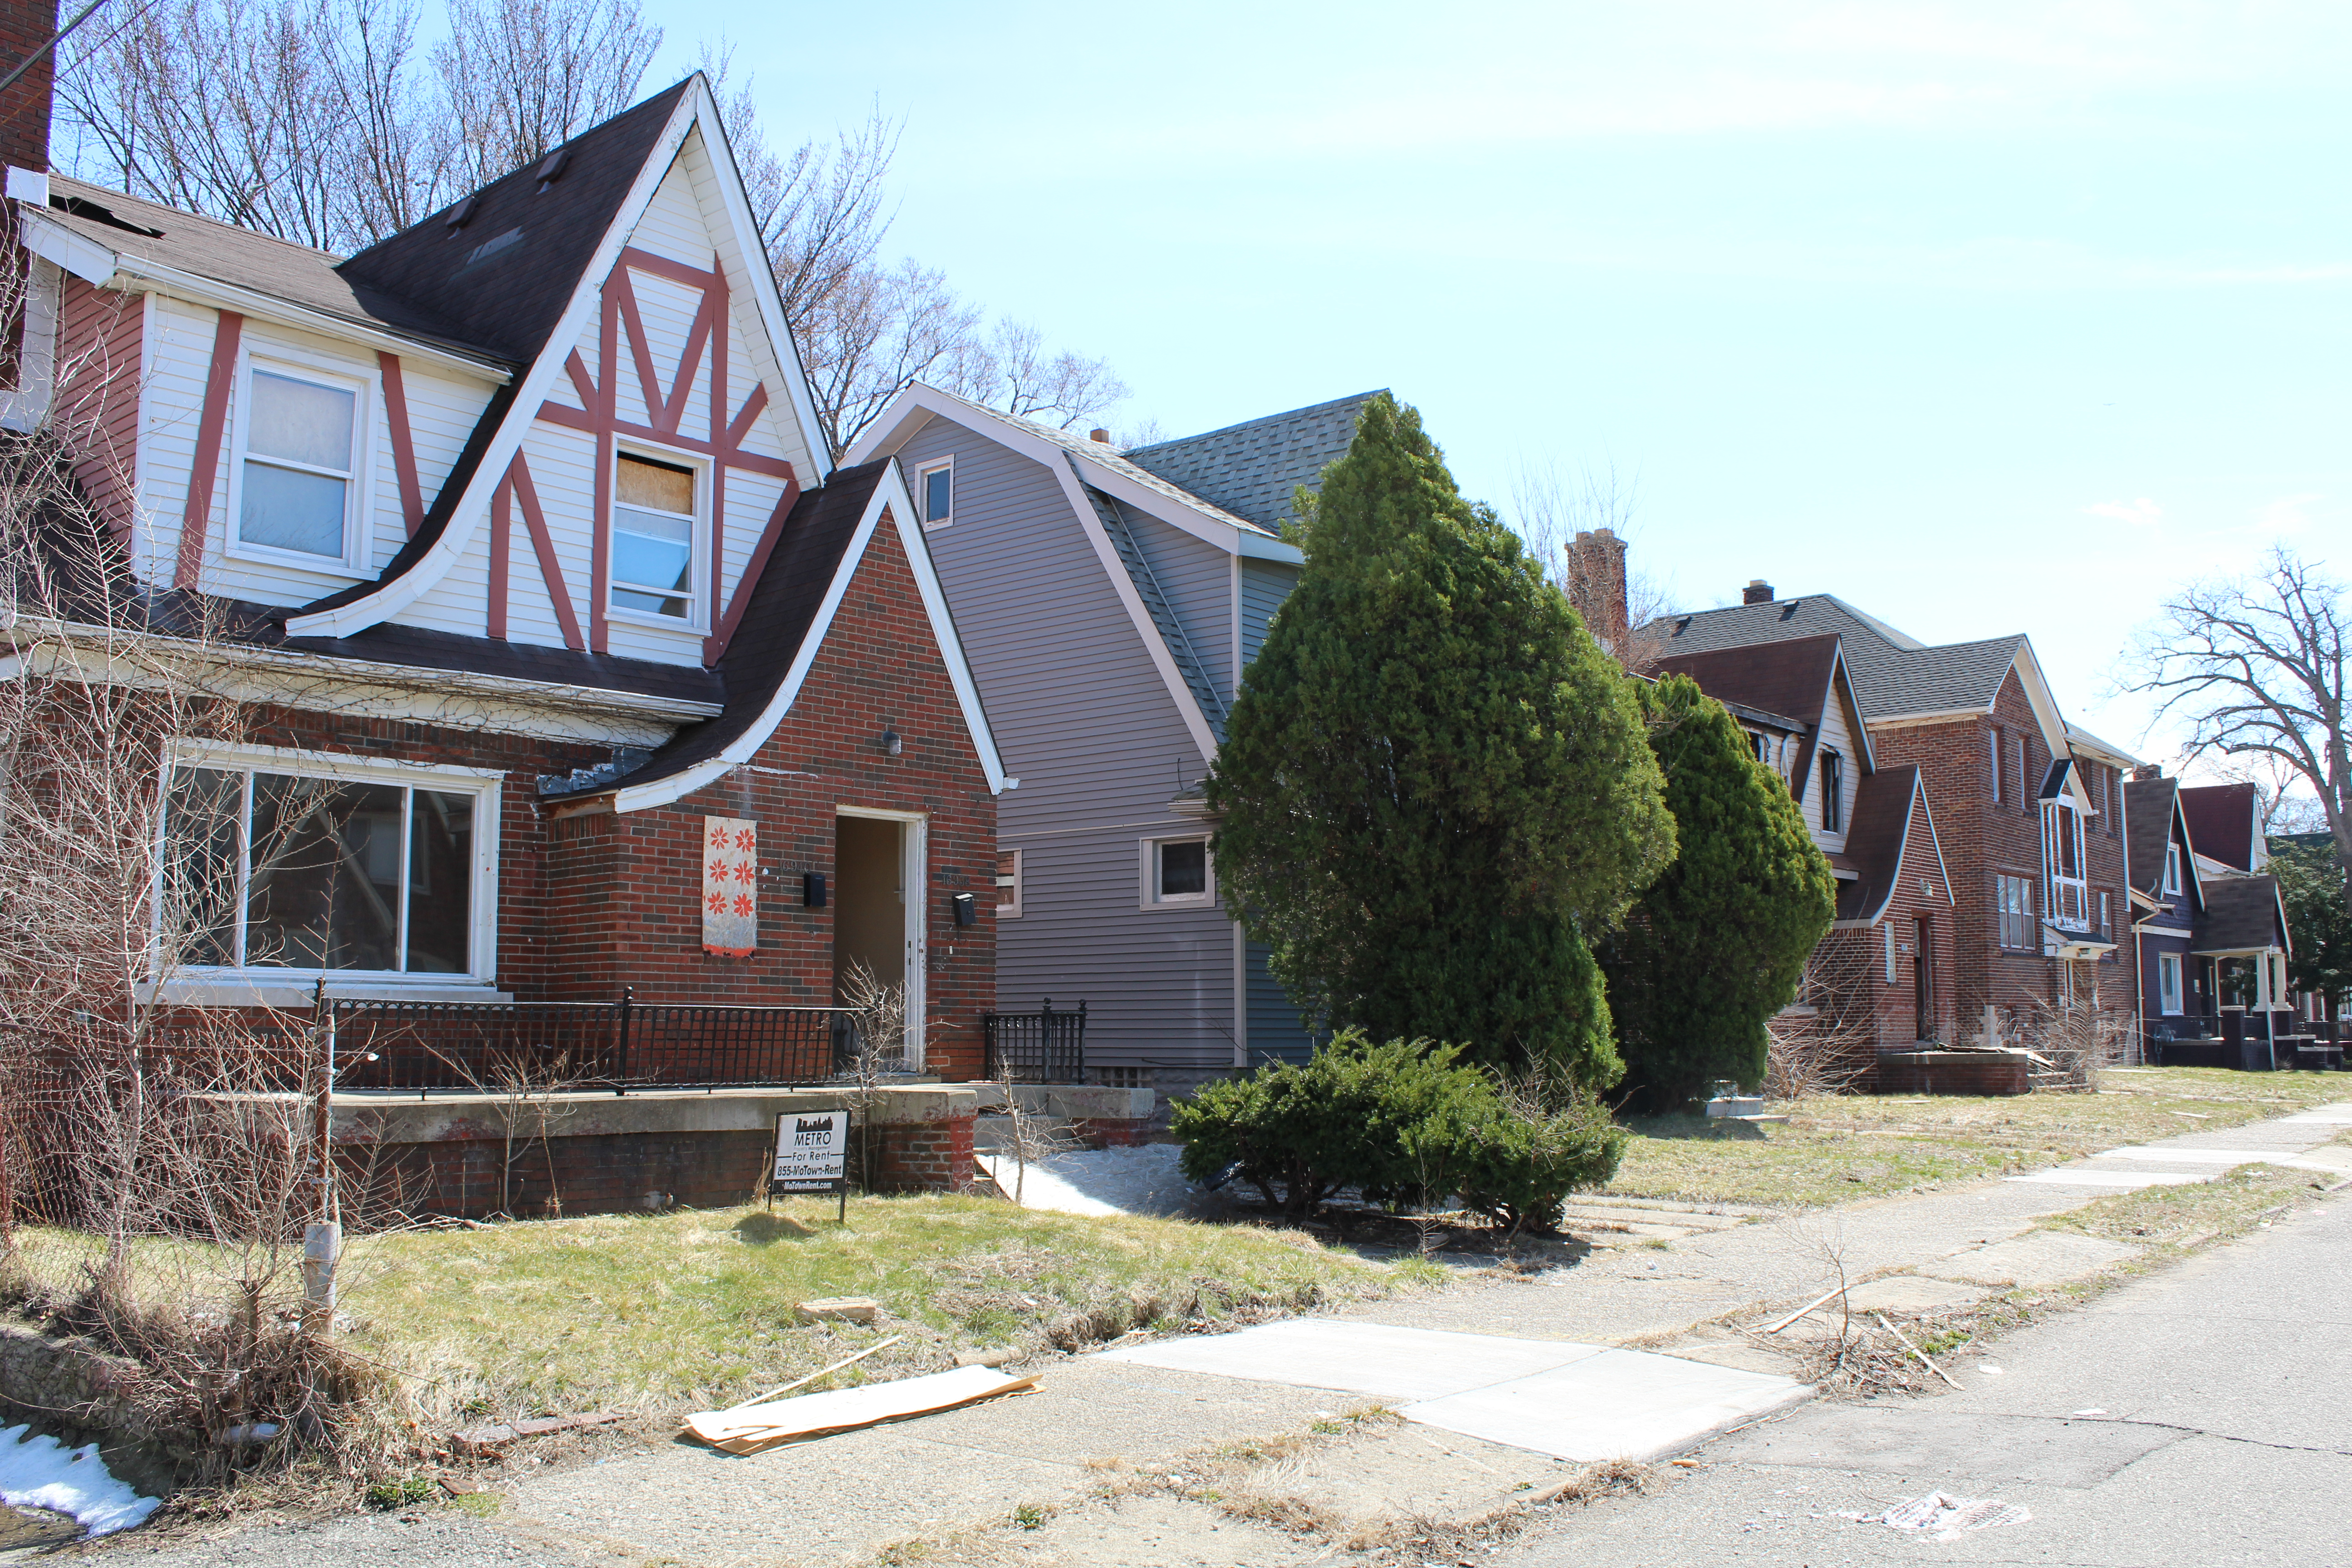 Wayne County Profited $107,000 By Repossessing Homes Over a $144 Tax Debt. Is This Legal?